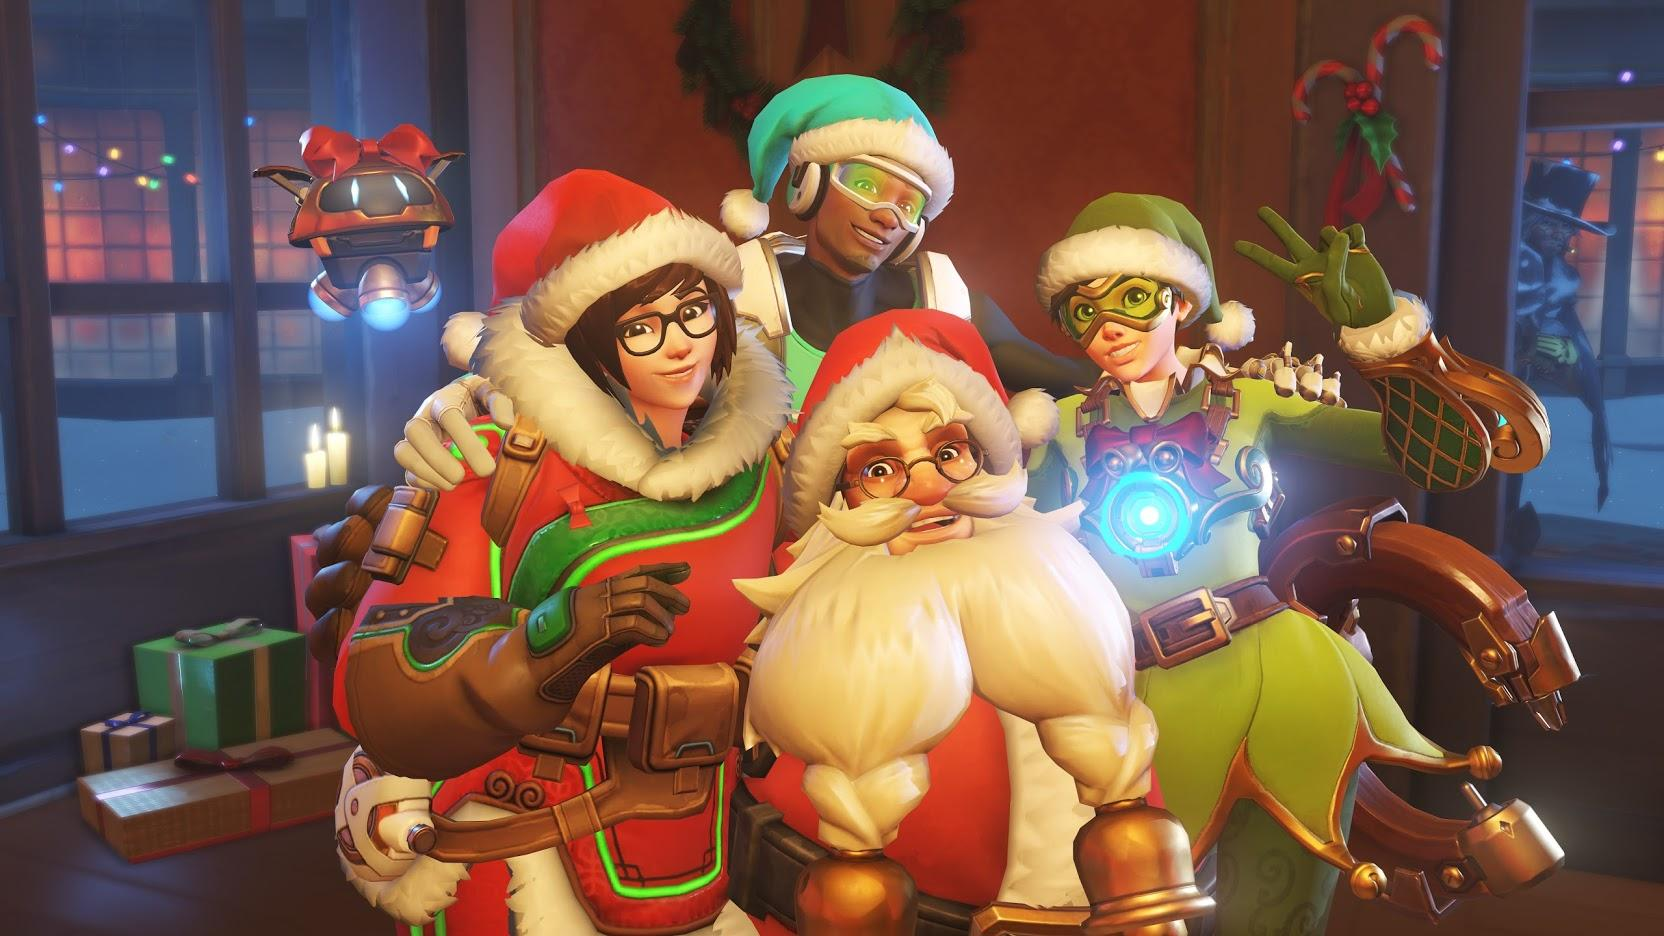 Overwatch Winter Wonderland release date confirmed